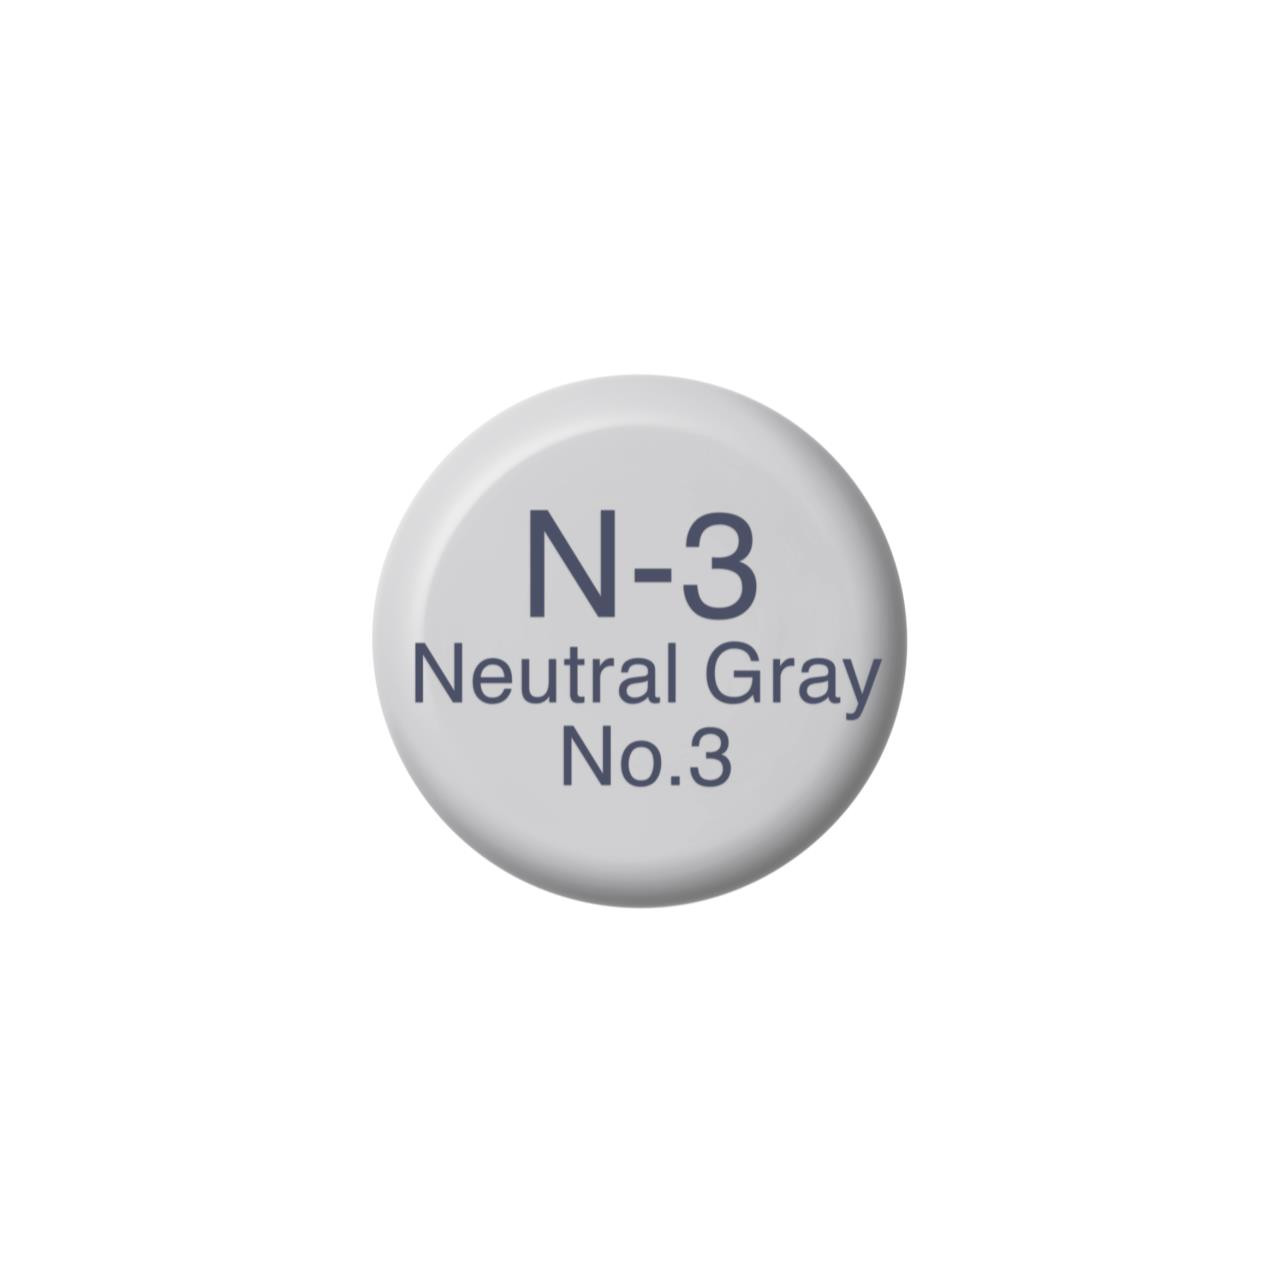 N3 Neutral Gray 3, Copic Ink - 4511338055465